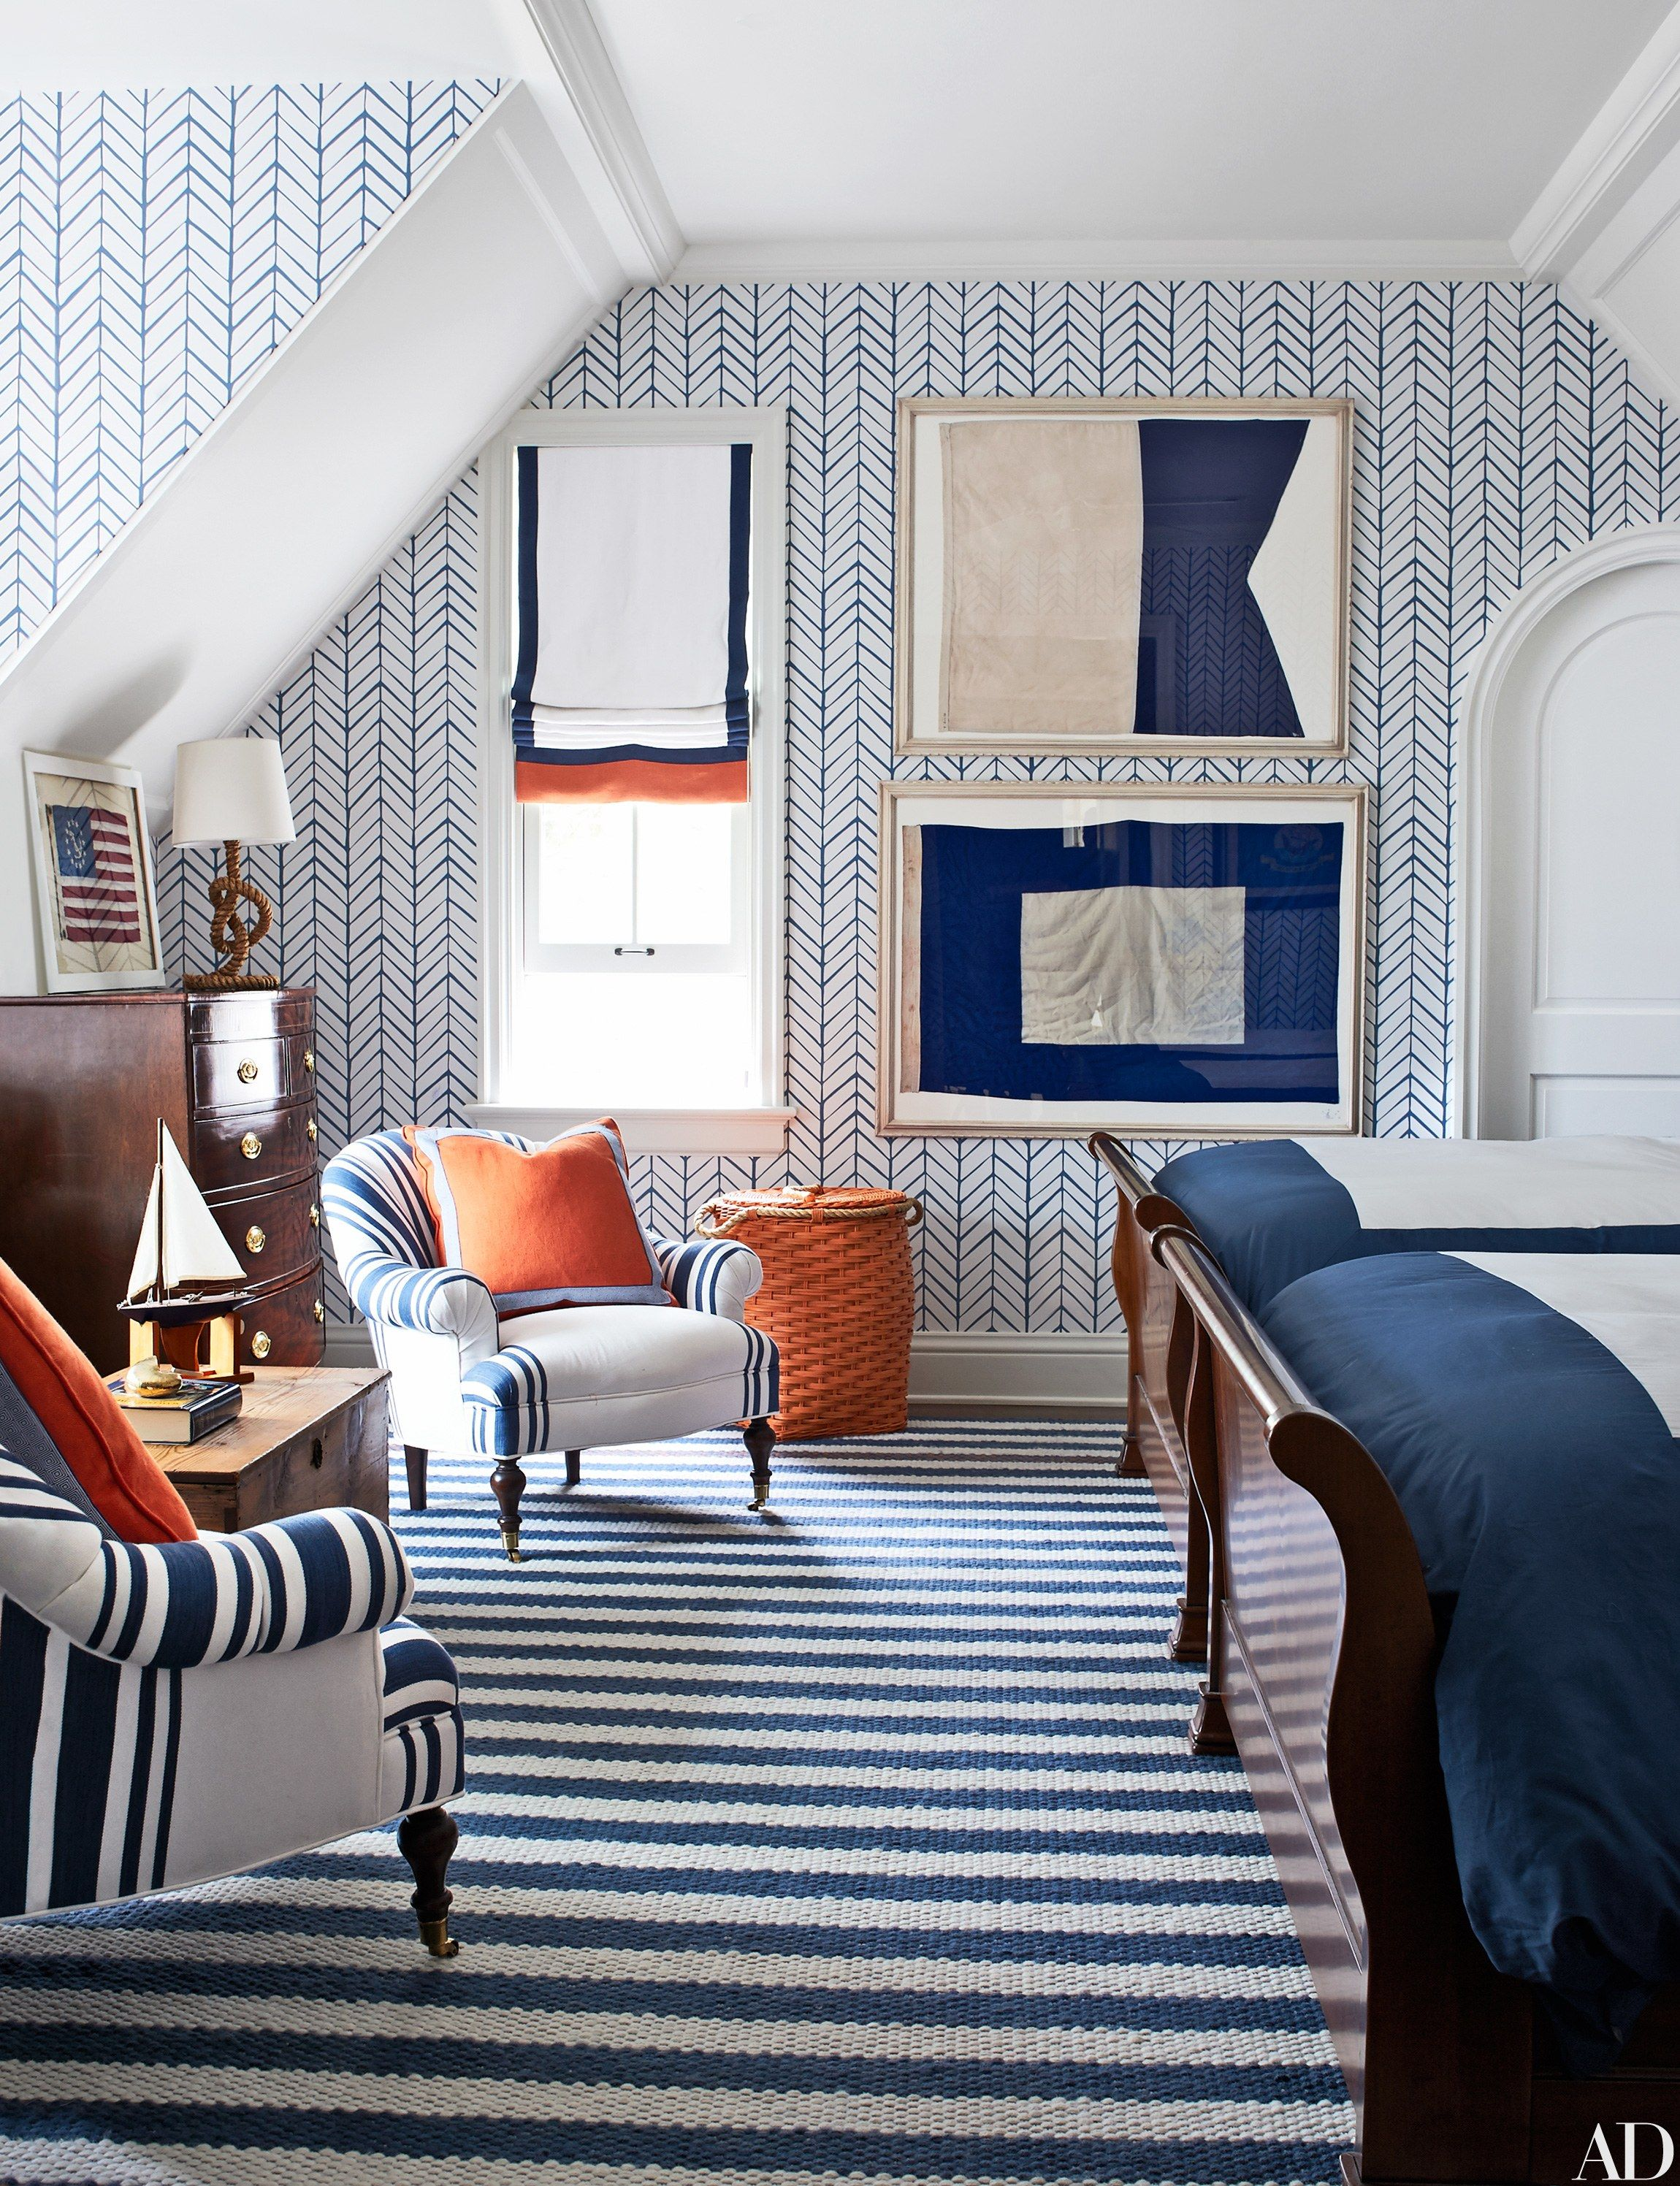 Maine Bedroom Furniture Suzanne Kasler And Les Cole Transform A Compound On The Coast Of